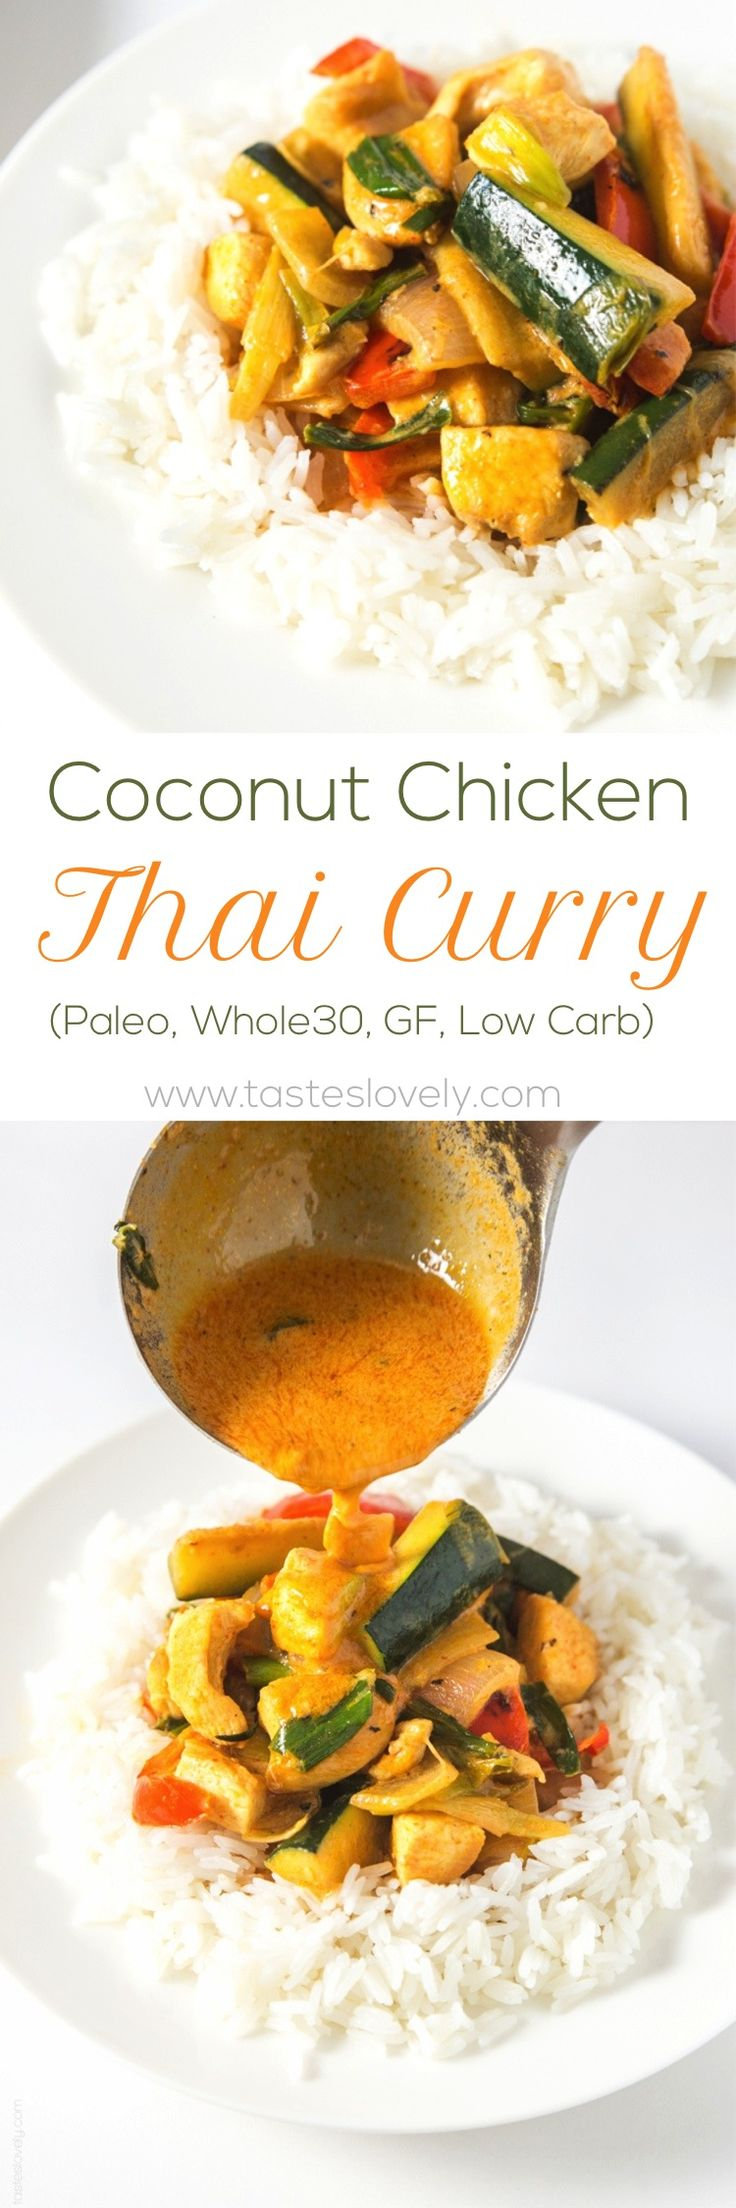 Coconut Chicken Thai Curry, easy and healthy! #paleo #whole30 #glutenfree #lowcarb